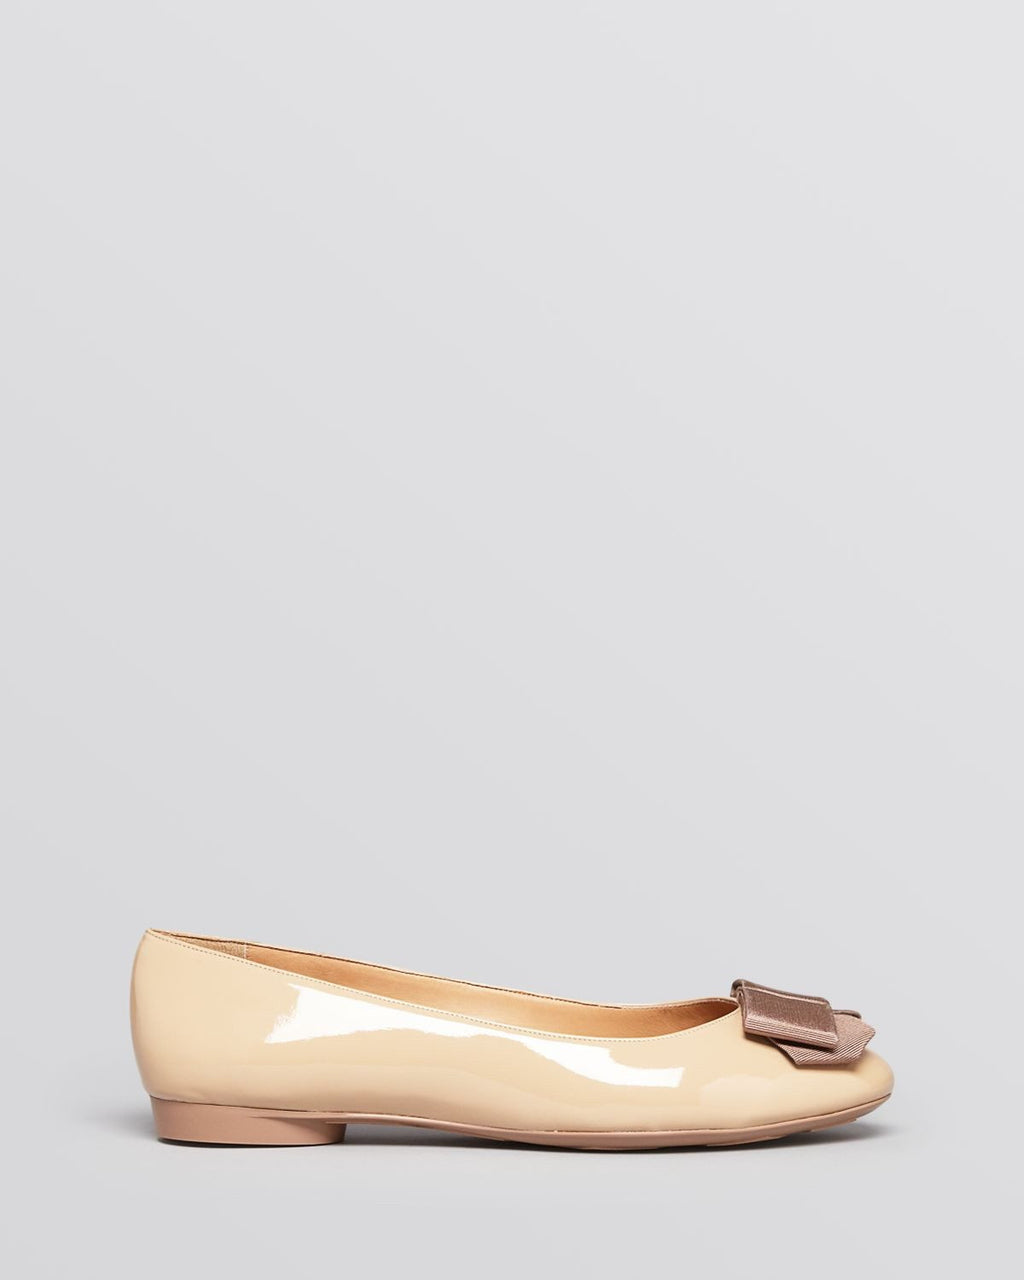 Ferragamo Women's Natural Ballet Flats My Cherie - Fashionbarn shop - 2